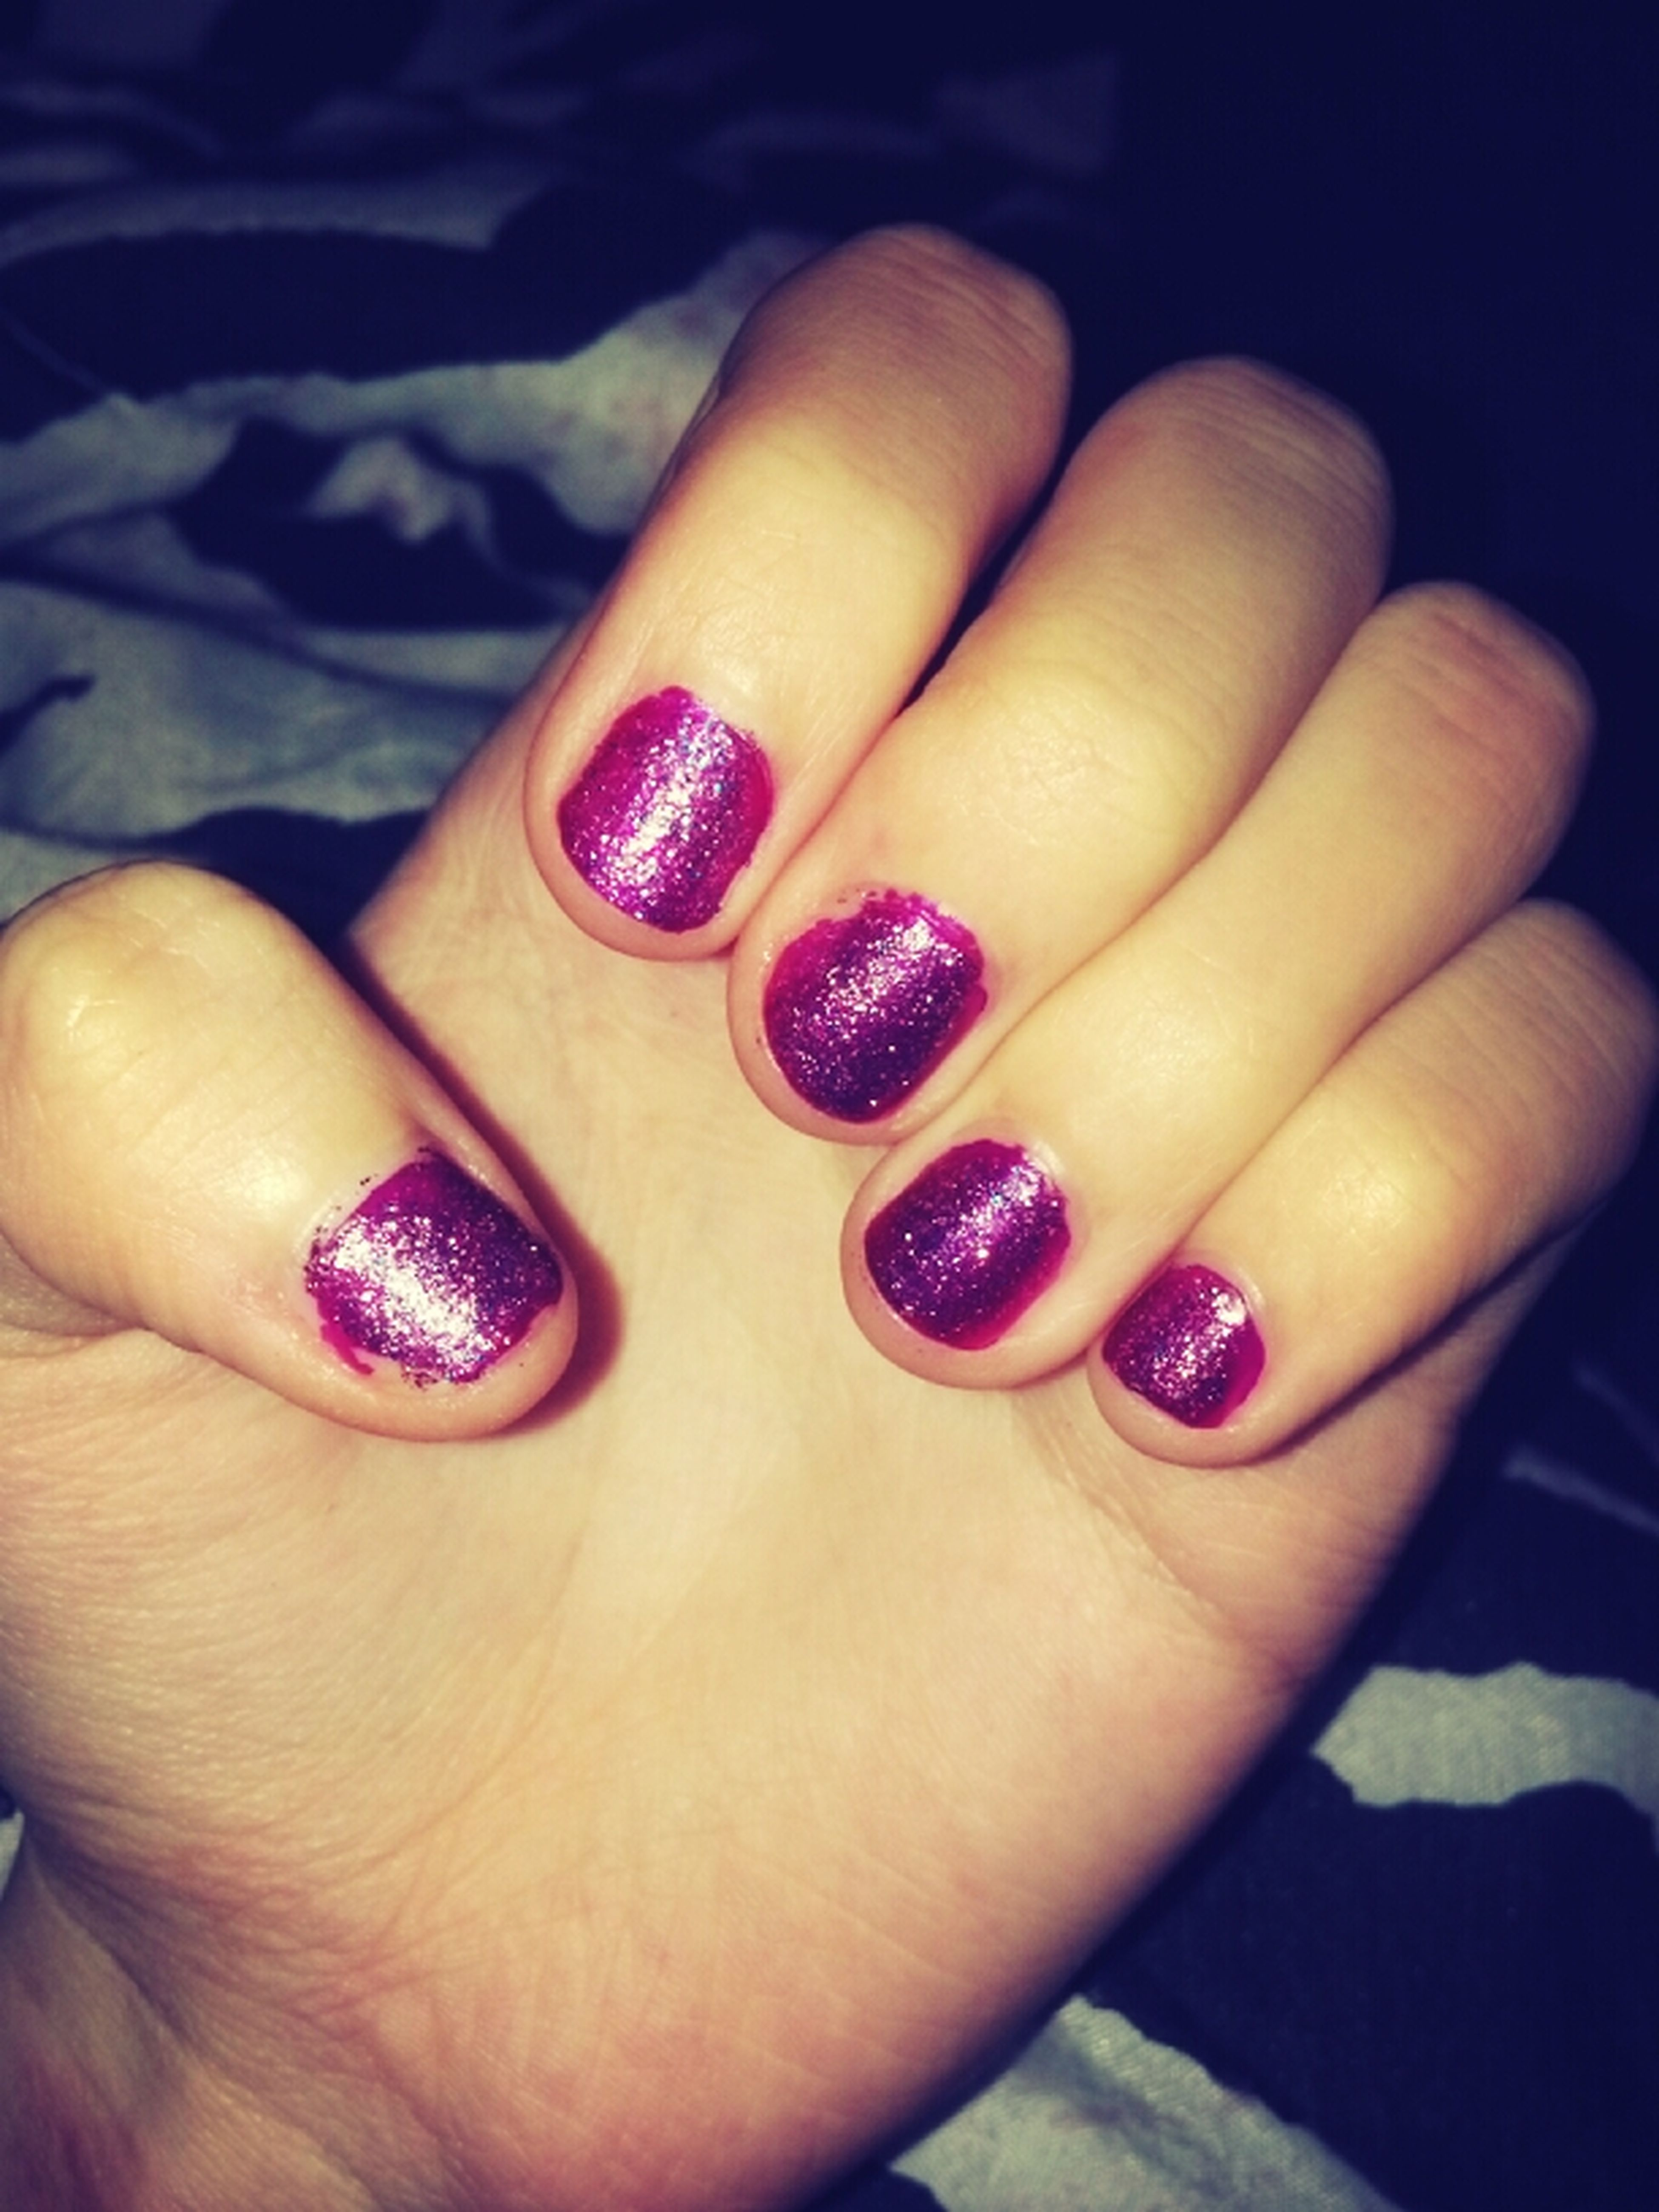 Got My Nails Done By Mari :)